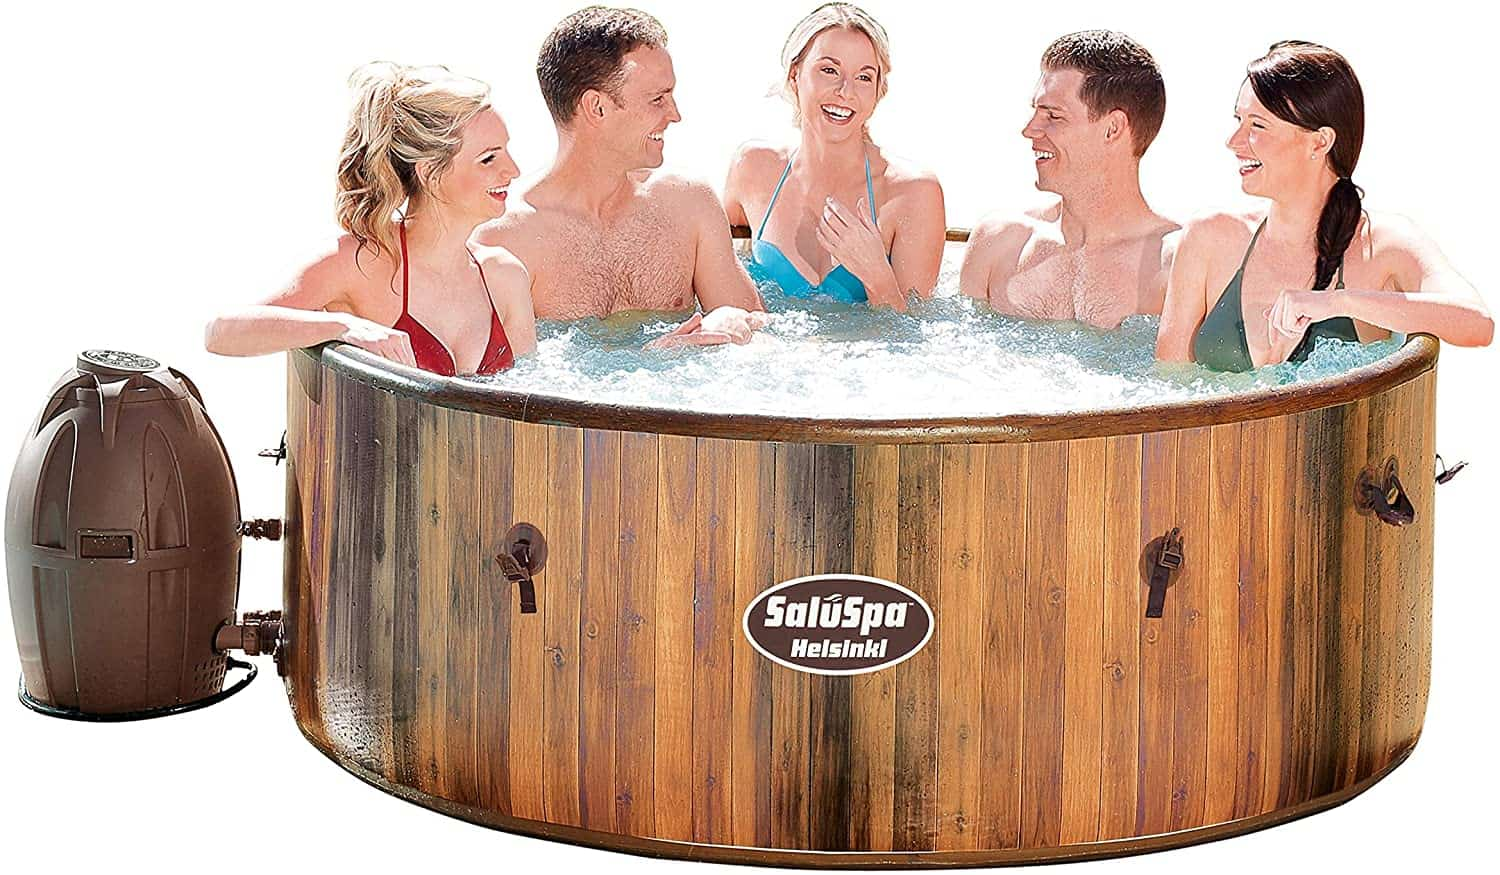 Bestway SaluSpa 7122 x 2622 Helsinki AirJet Inflatable Hot Tub